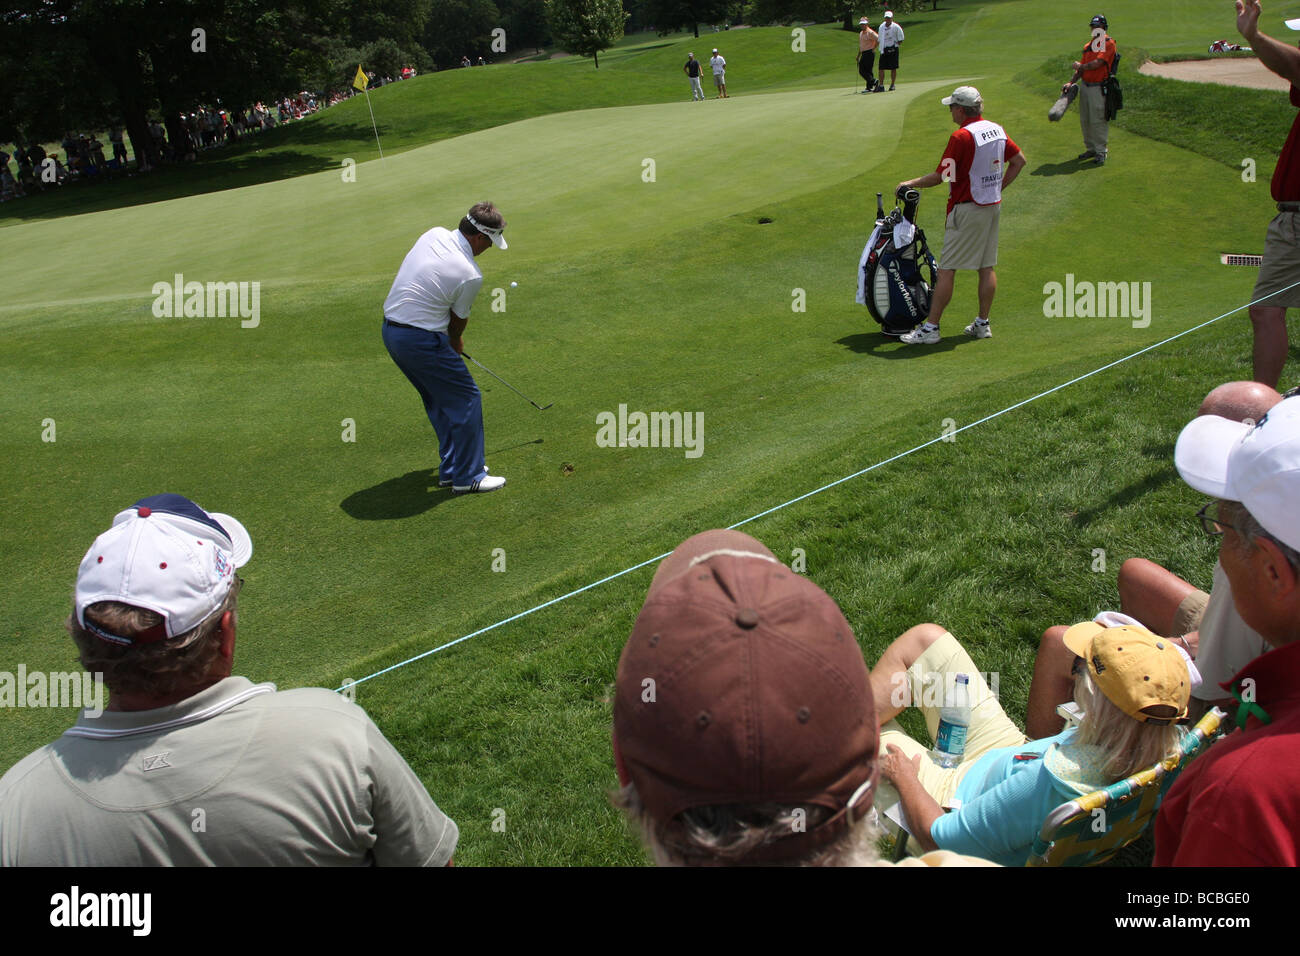 Fans watch a pro golfer during the Travelers Championship golf Tournament in Cromwell CT USA - Stock Image